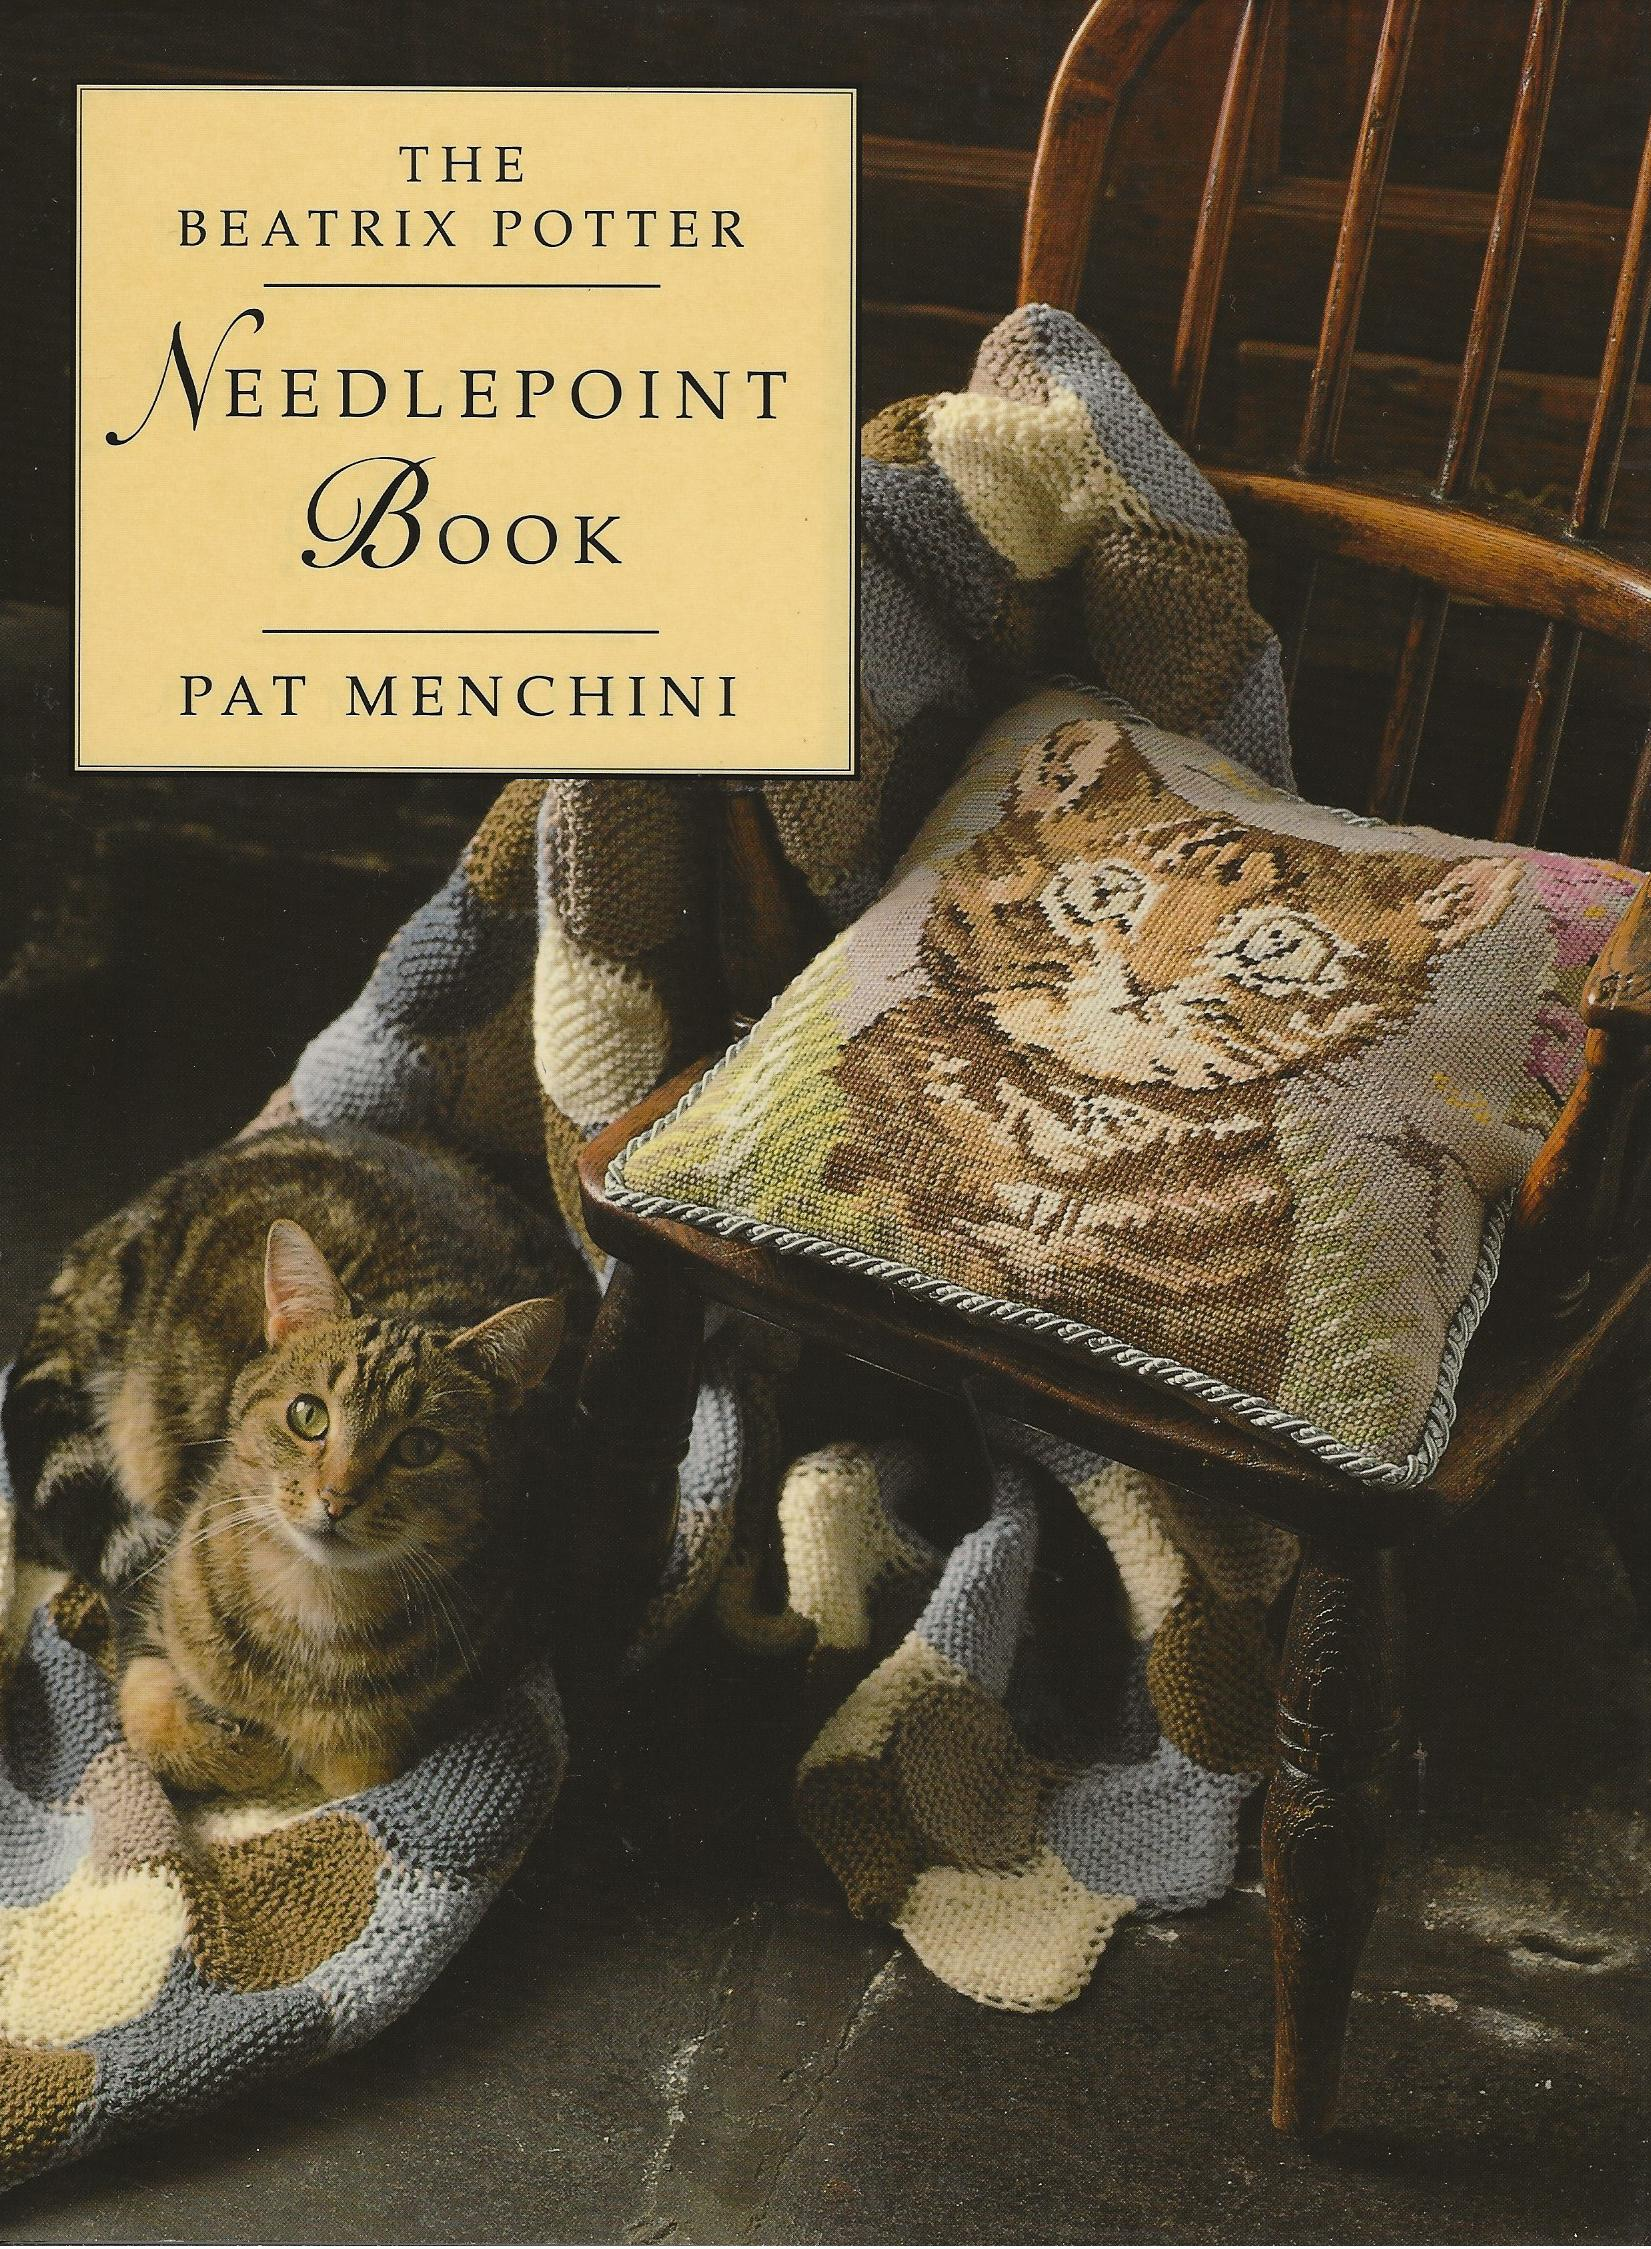 Image for THE BEATRIX POTTER NEEDLEPOINT BOOK,